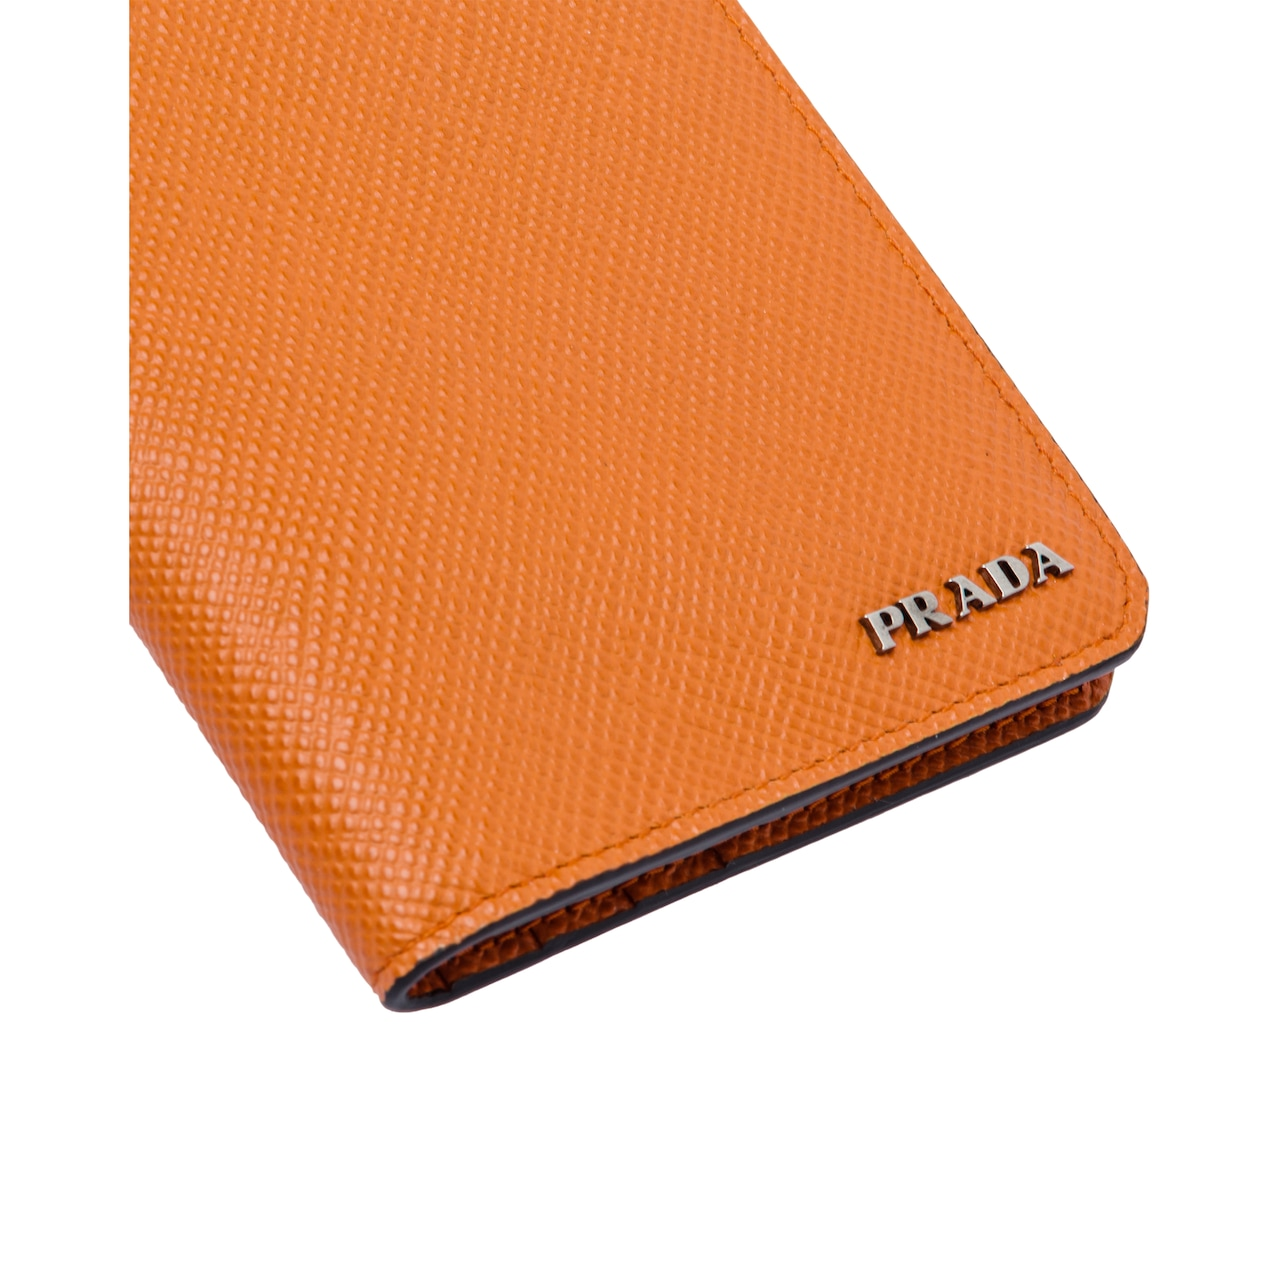 Saffiano leather wallet 6